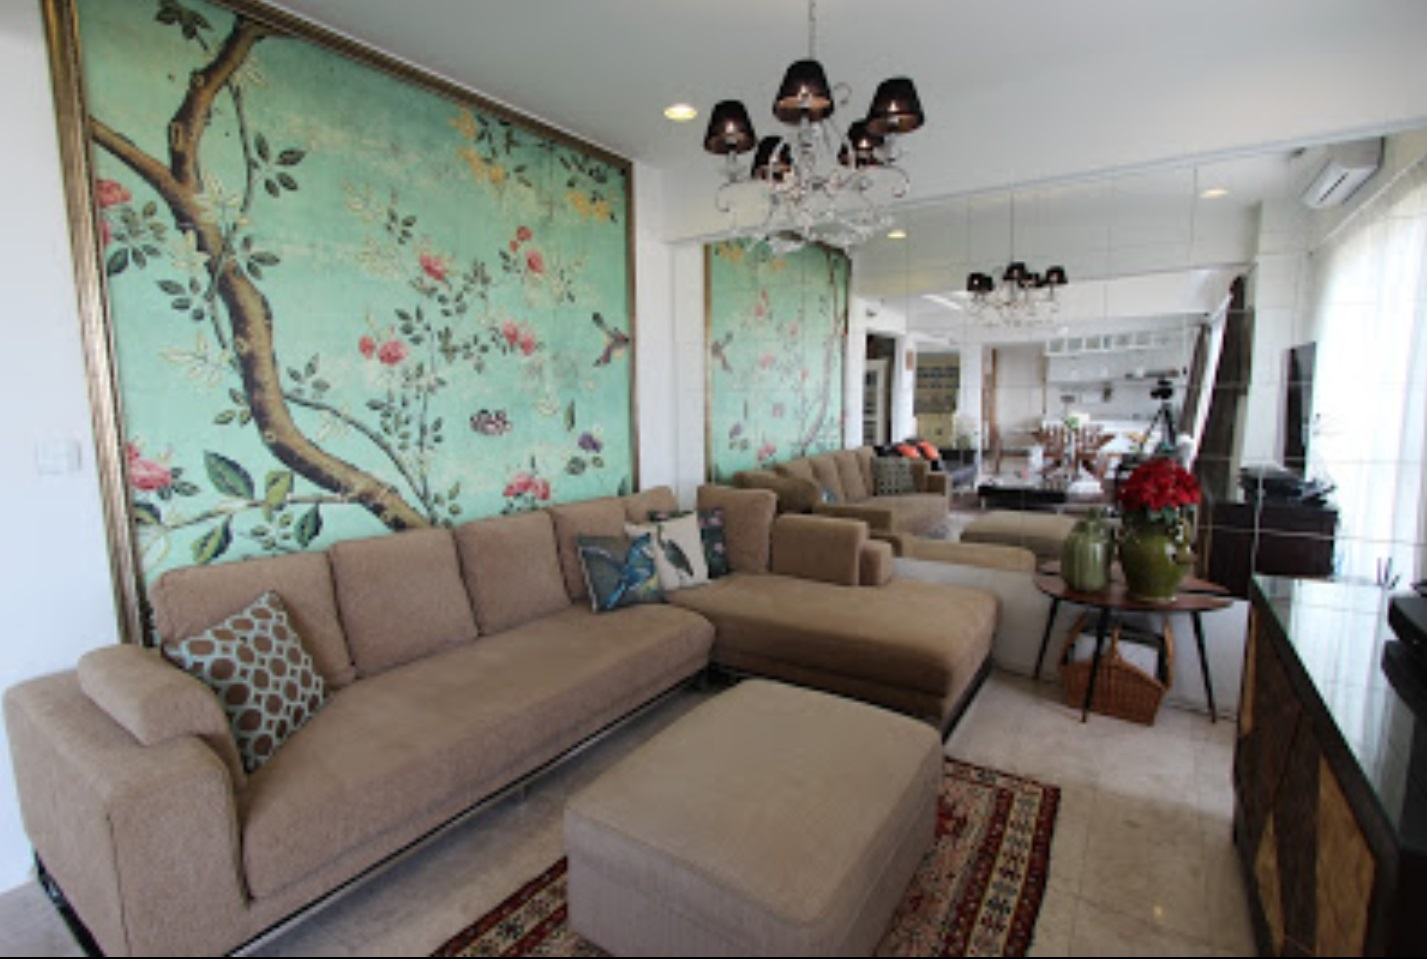 Main Photo of a 6 bedroom  Duplex for sale